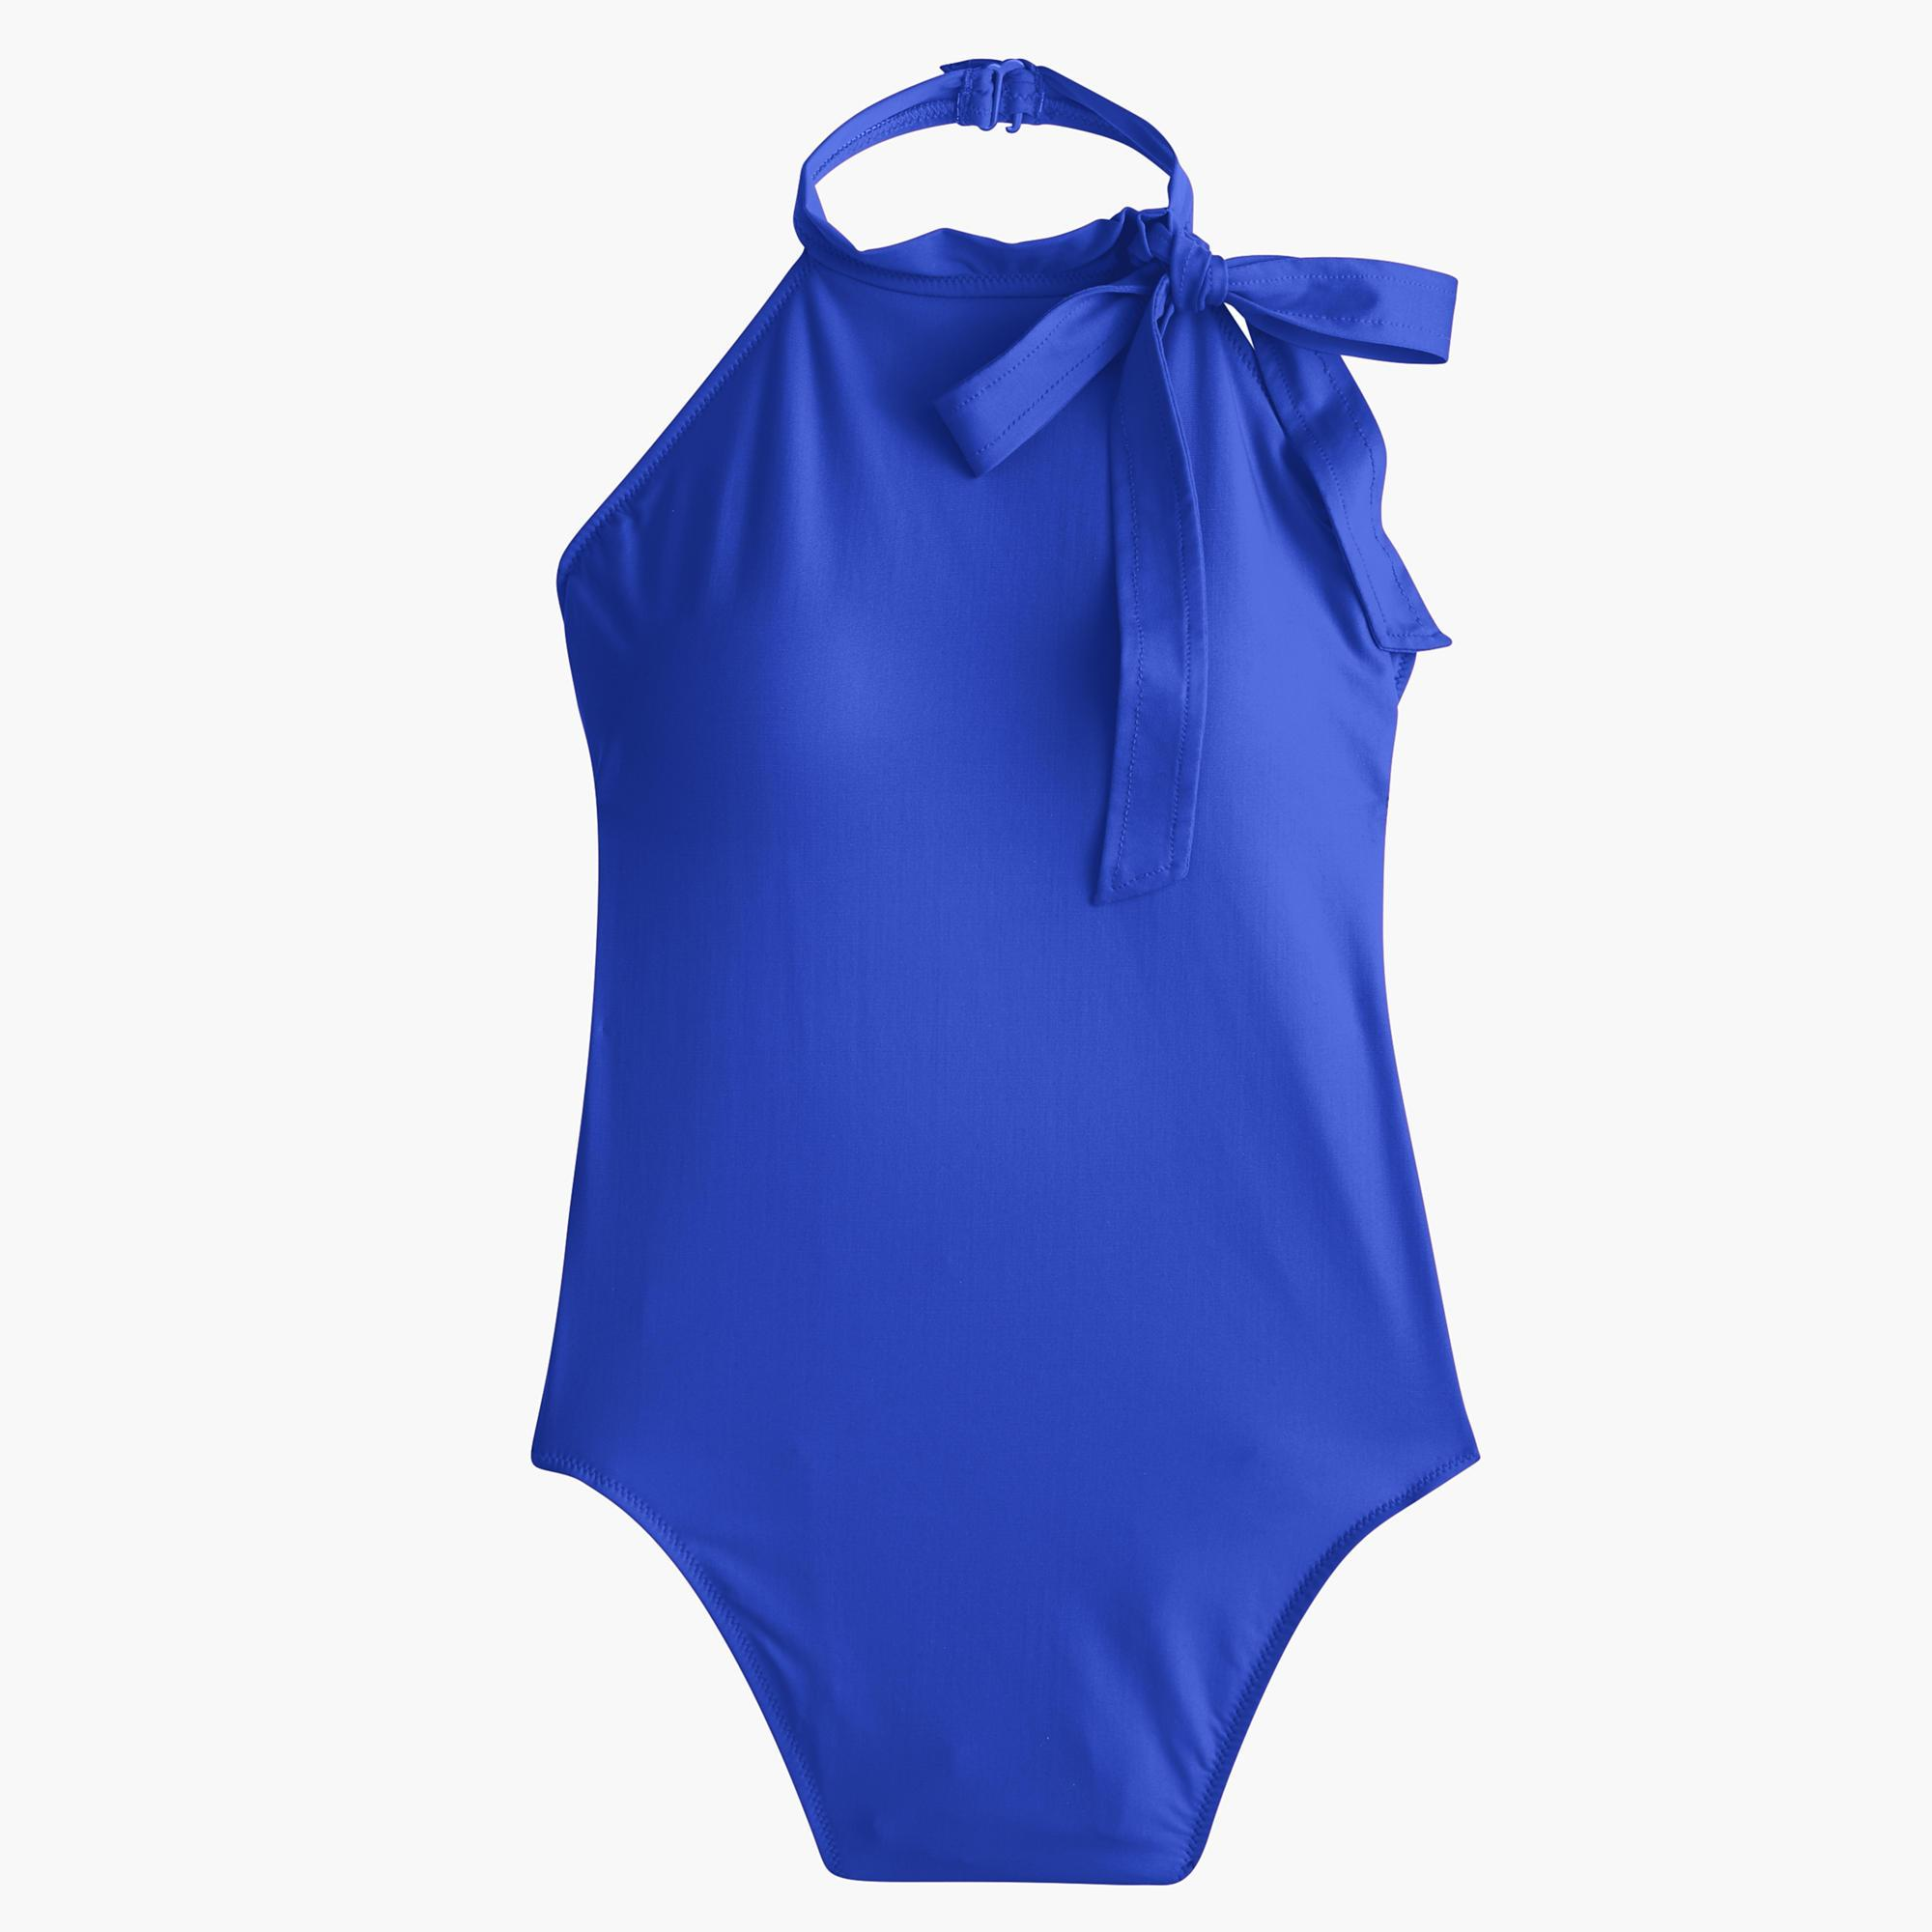 c40b7a211f026 J.Crew Halter Bow-tie One-piece Swimsuit in Blue - Lyst